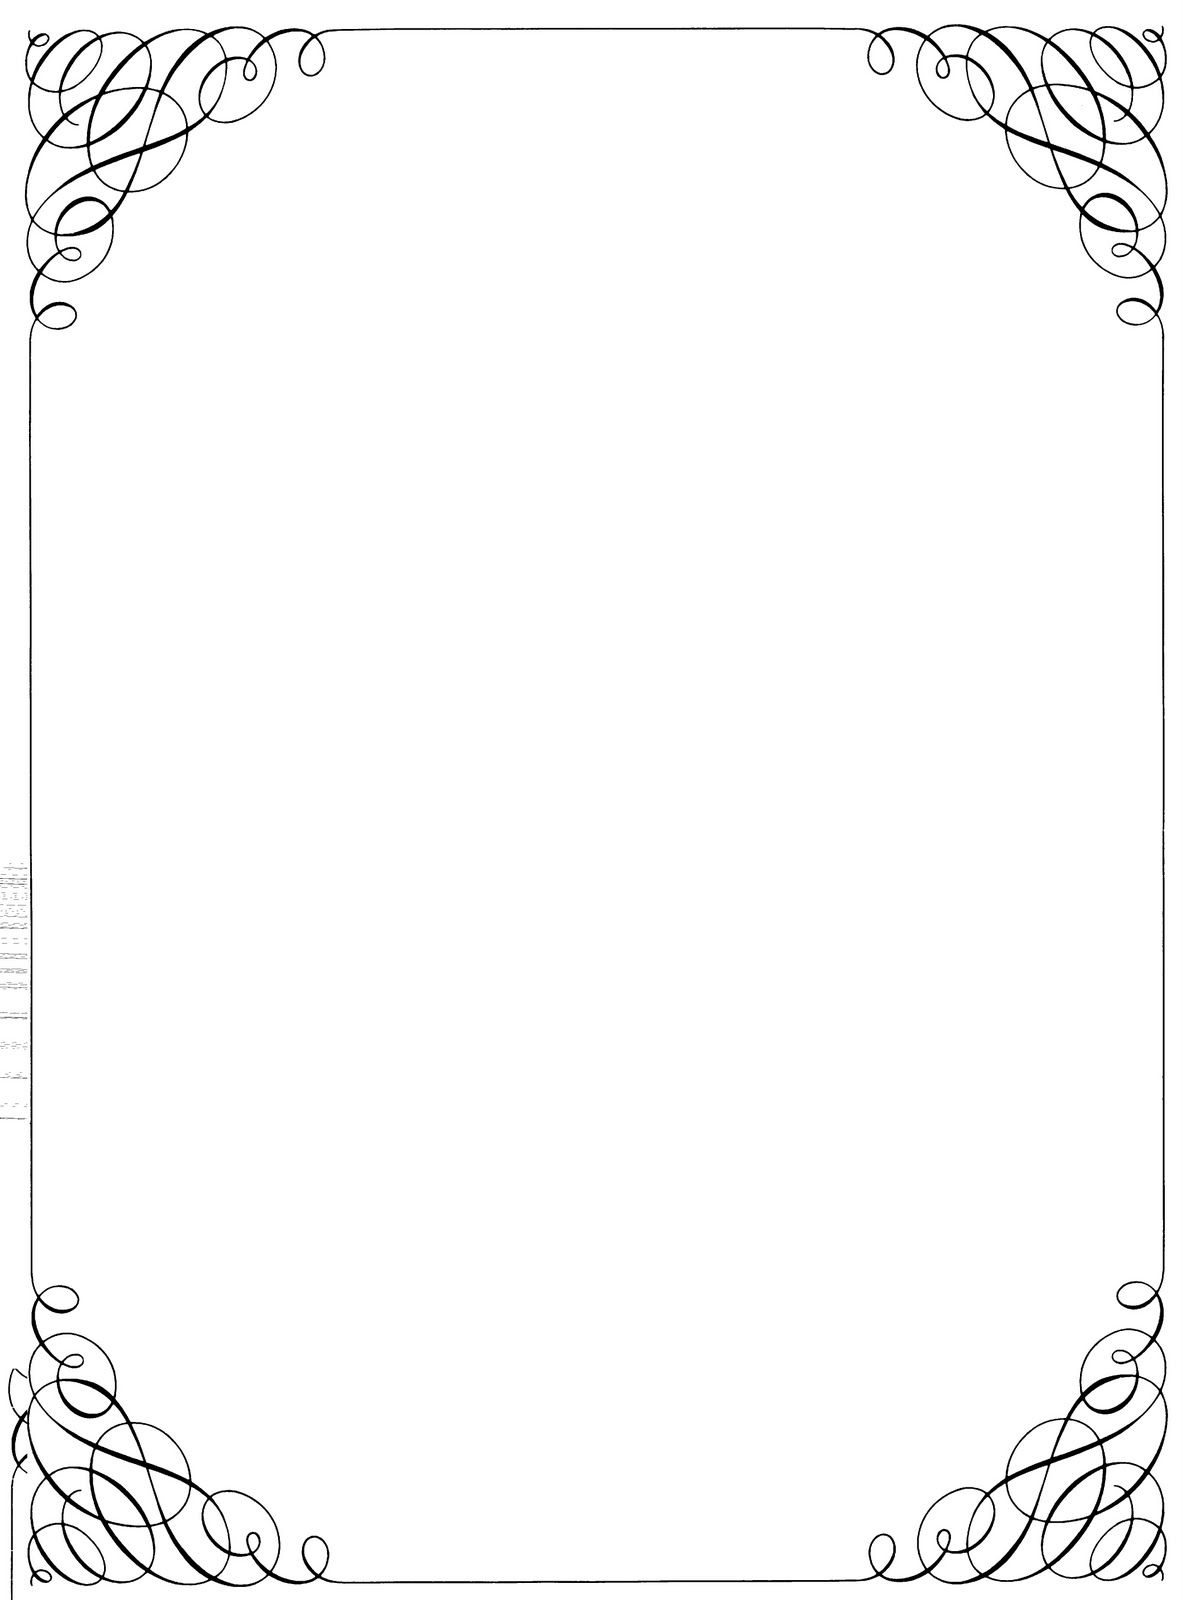 Boarder clipart calligraphy. Free microsoft borders and